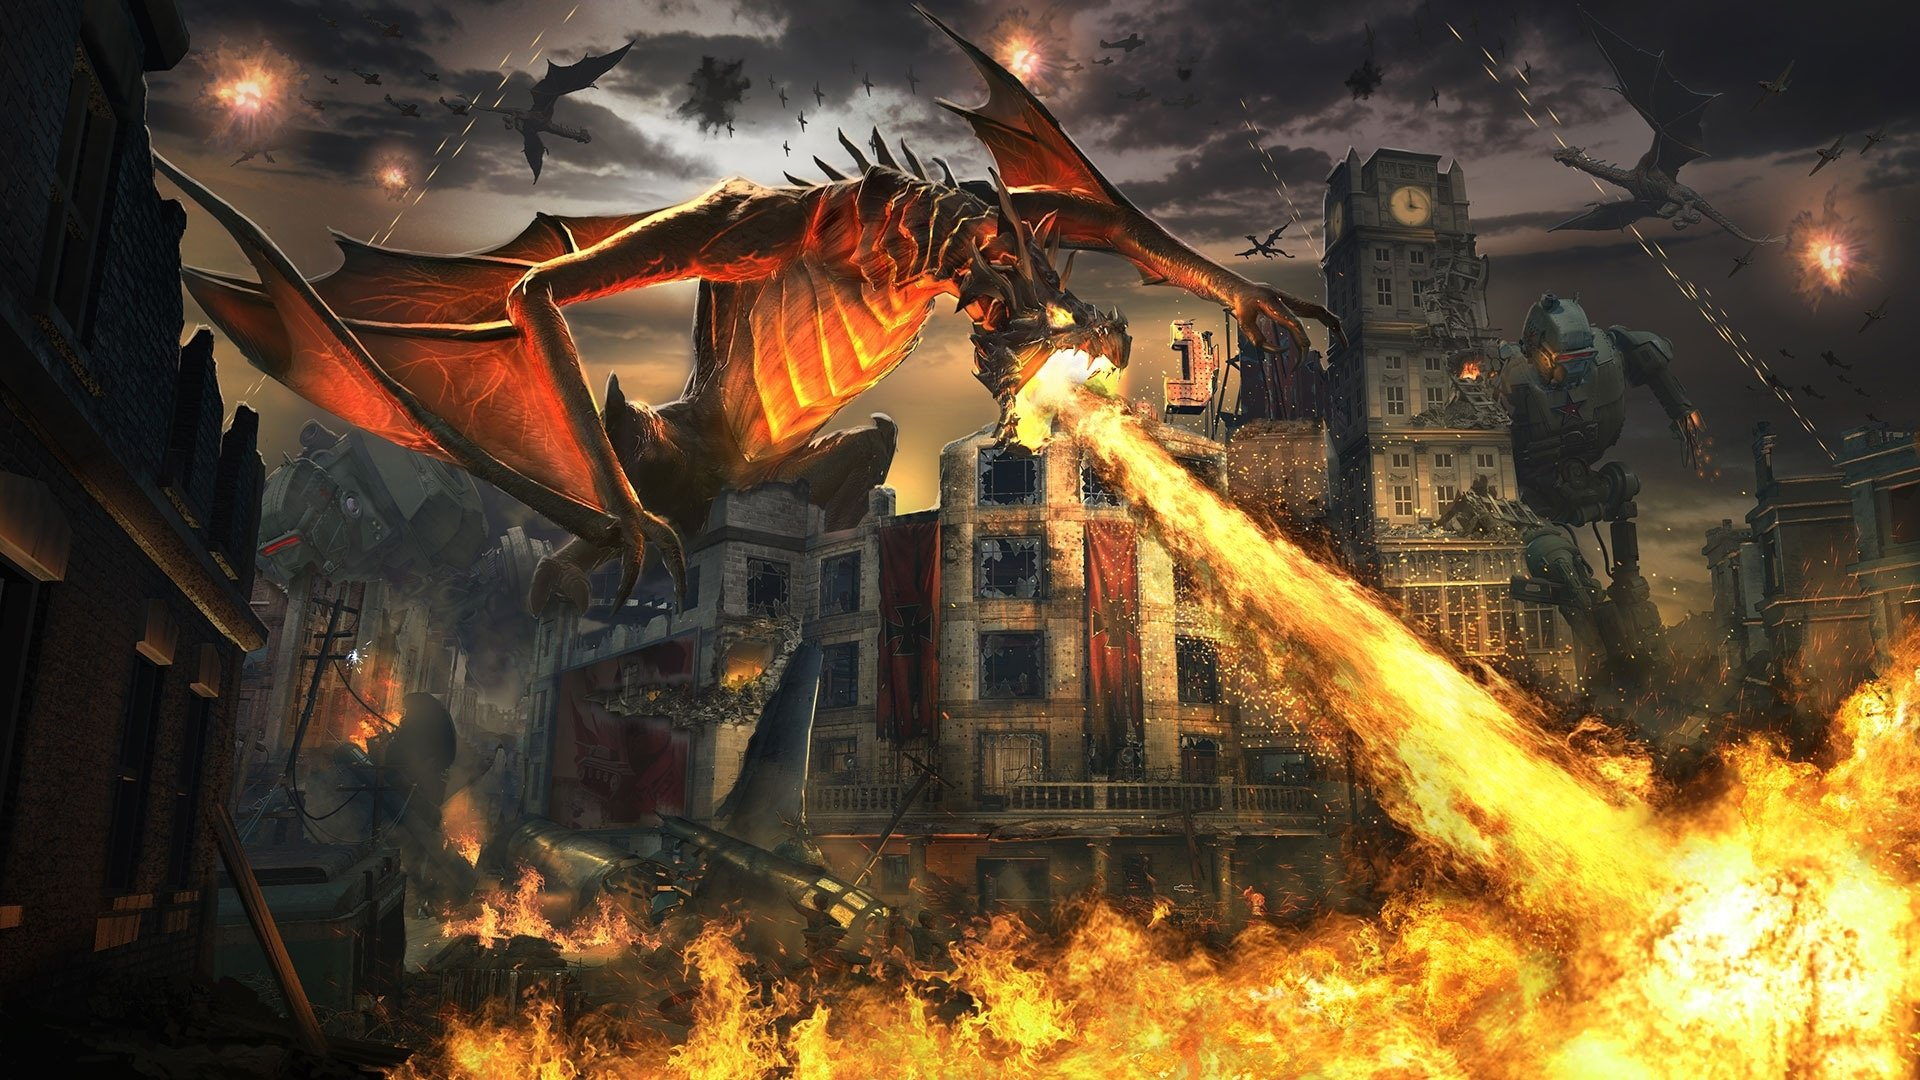 Video Game - Call of Duty: Black Ops III  Dragon Fire Wallpaper